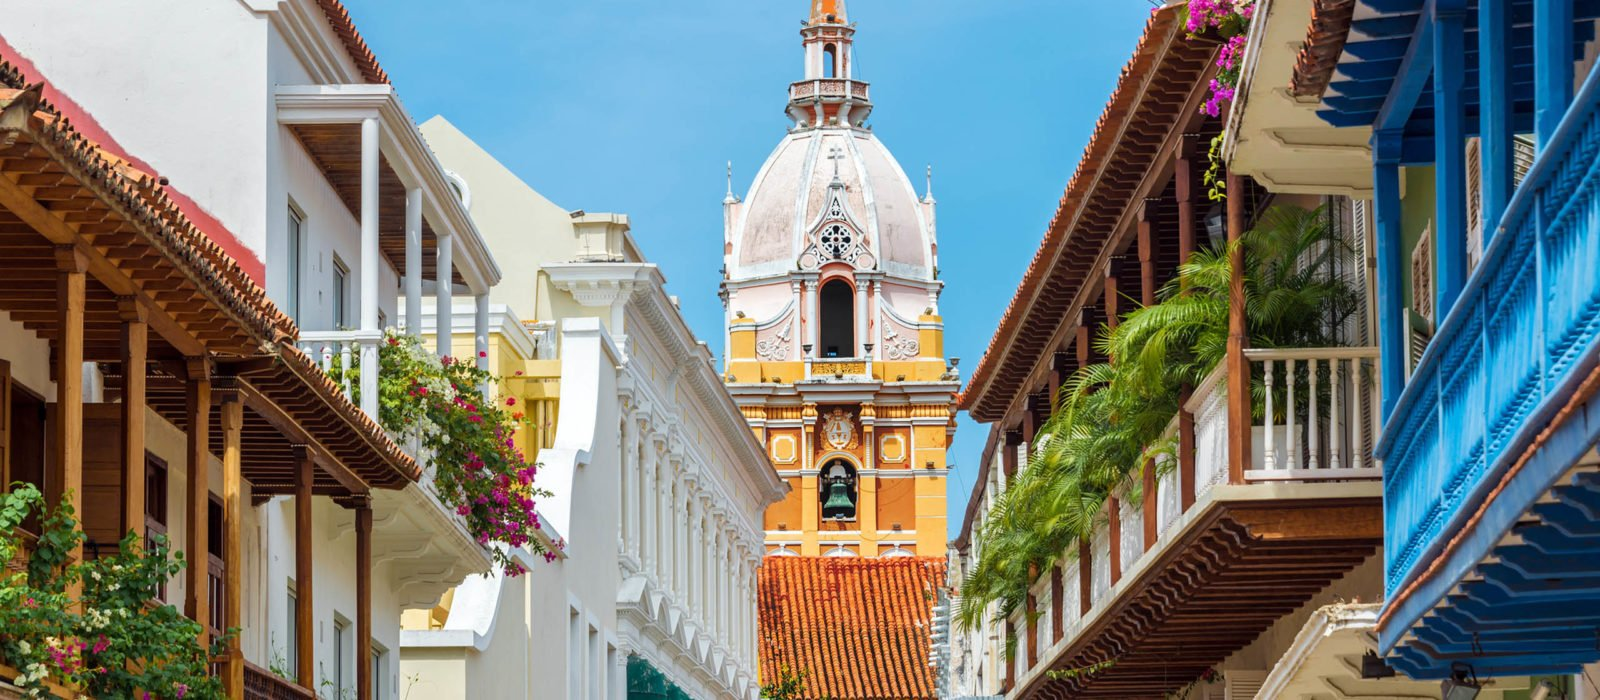 Cathedral and Balconies in Cartagena, Colombia